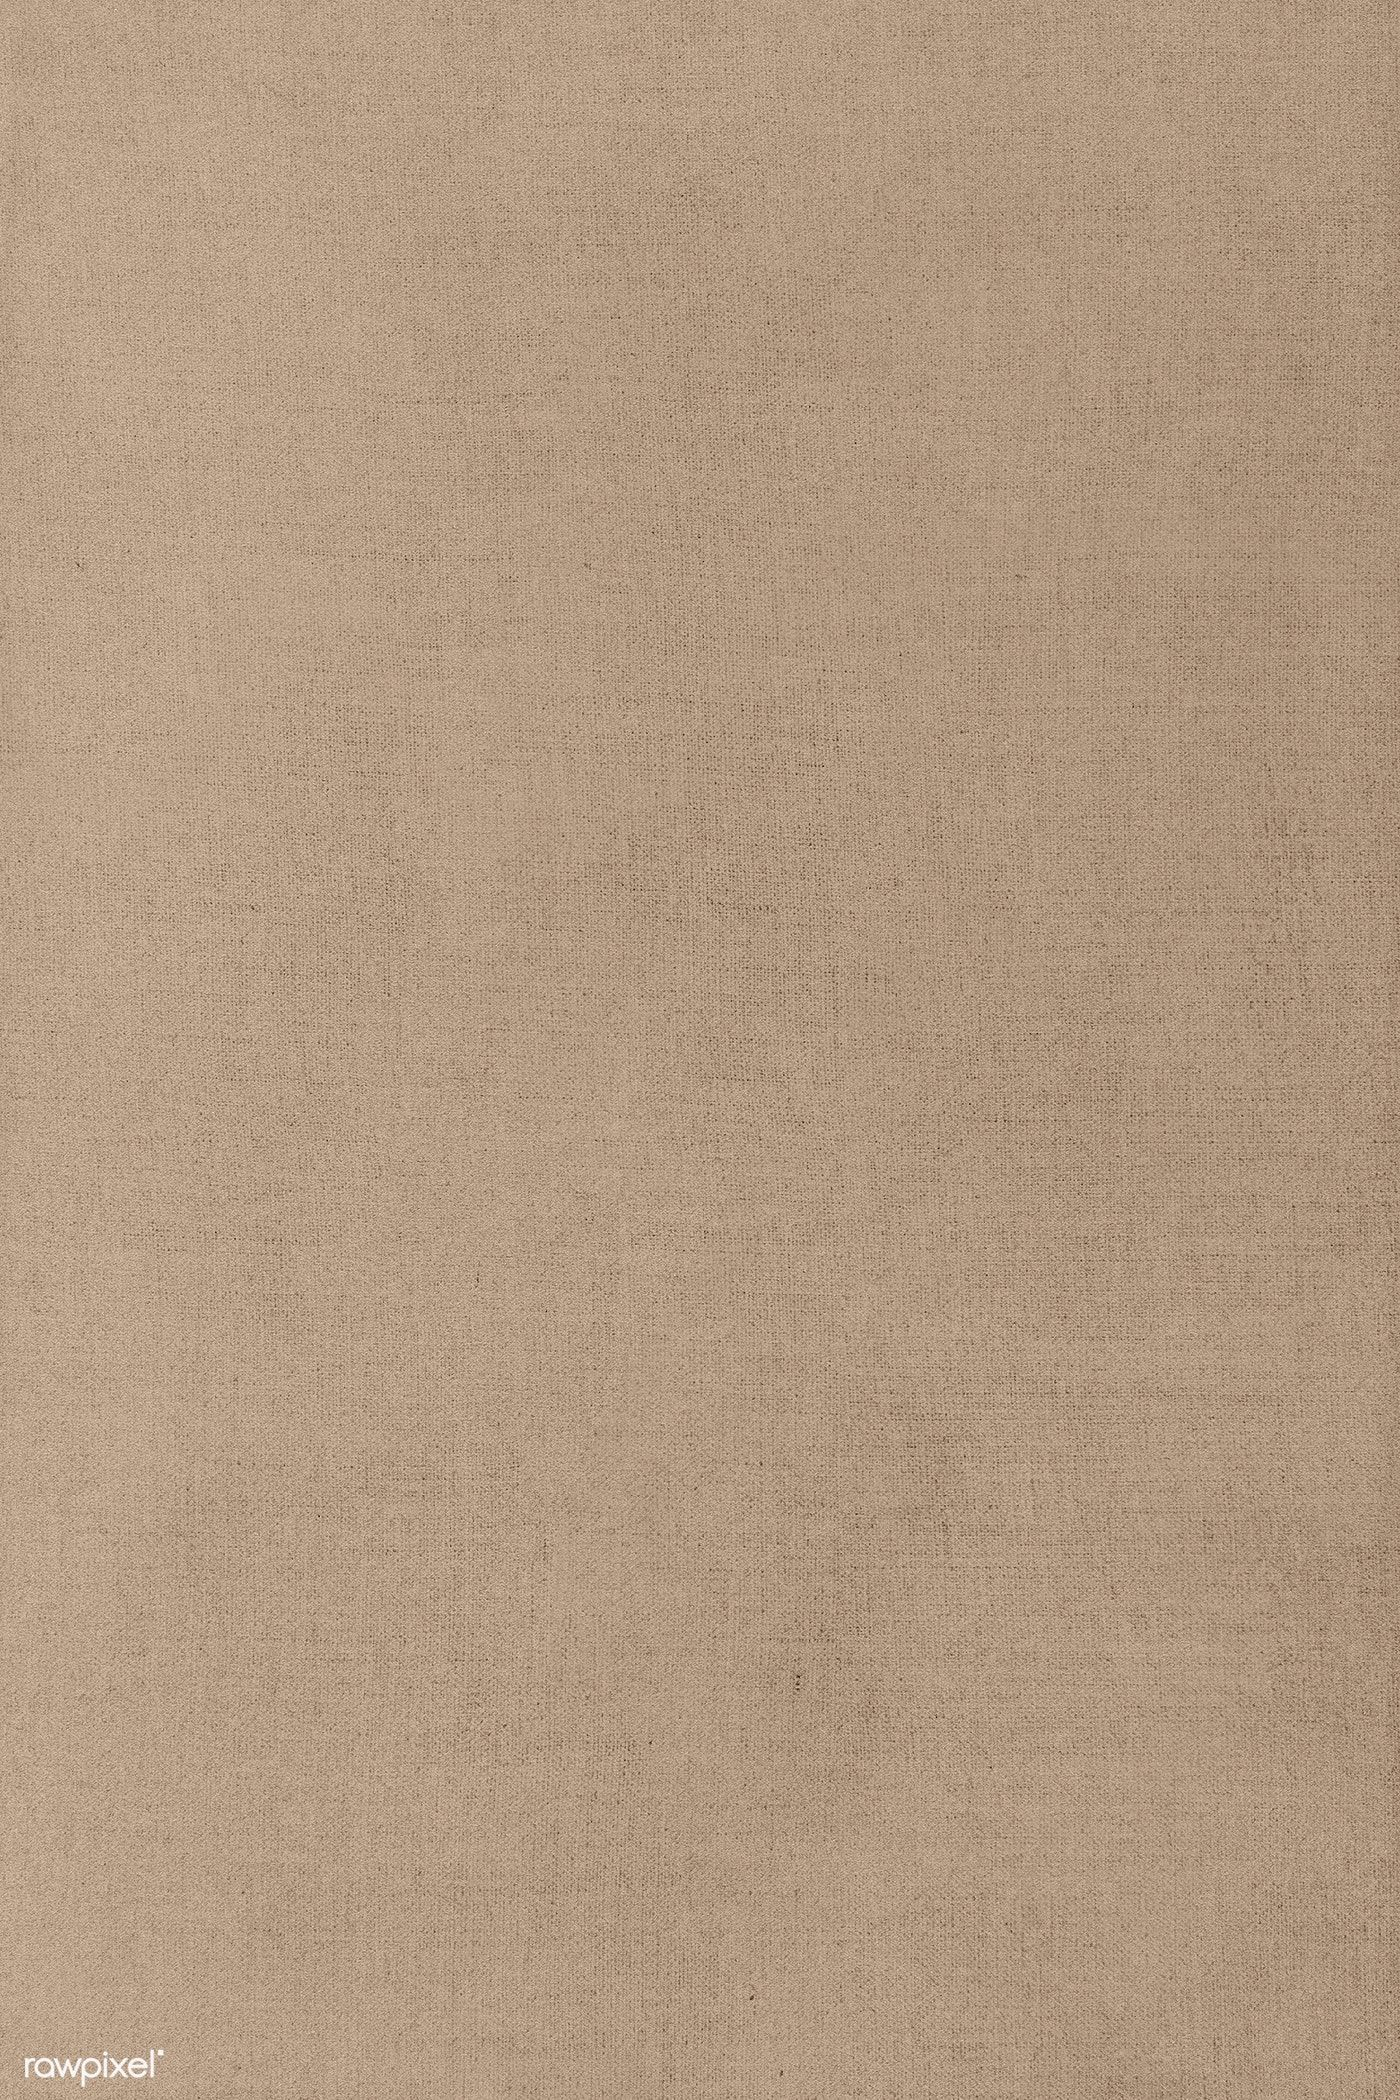 Download Premium Illustration Of Brown Oil Paint Textured Background 895339 Texture Painting Textured Background Brown Aesthetic